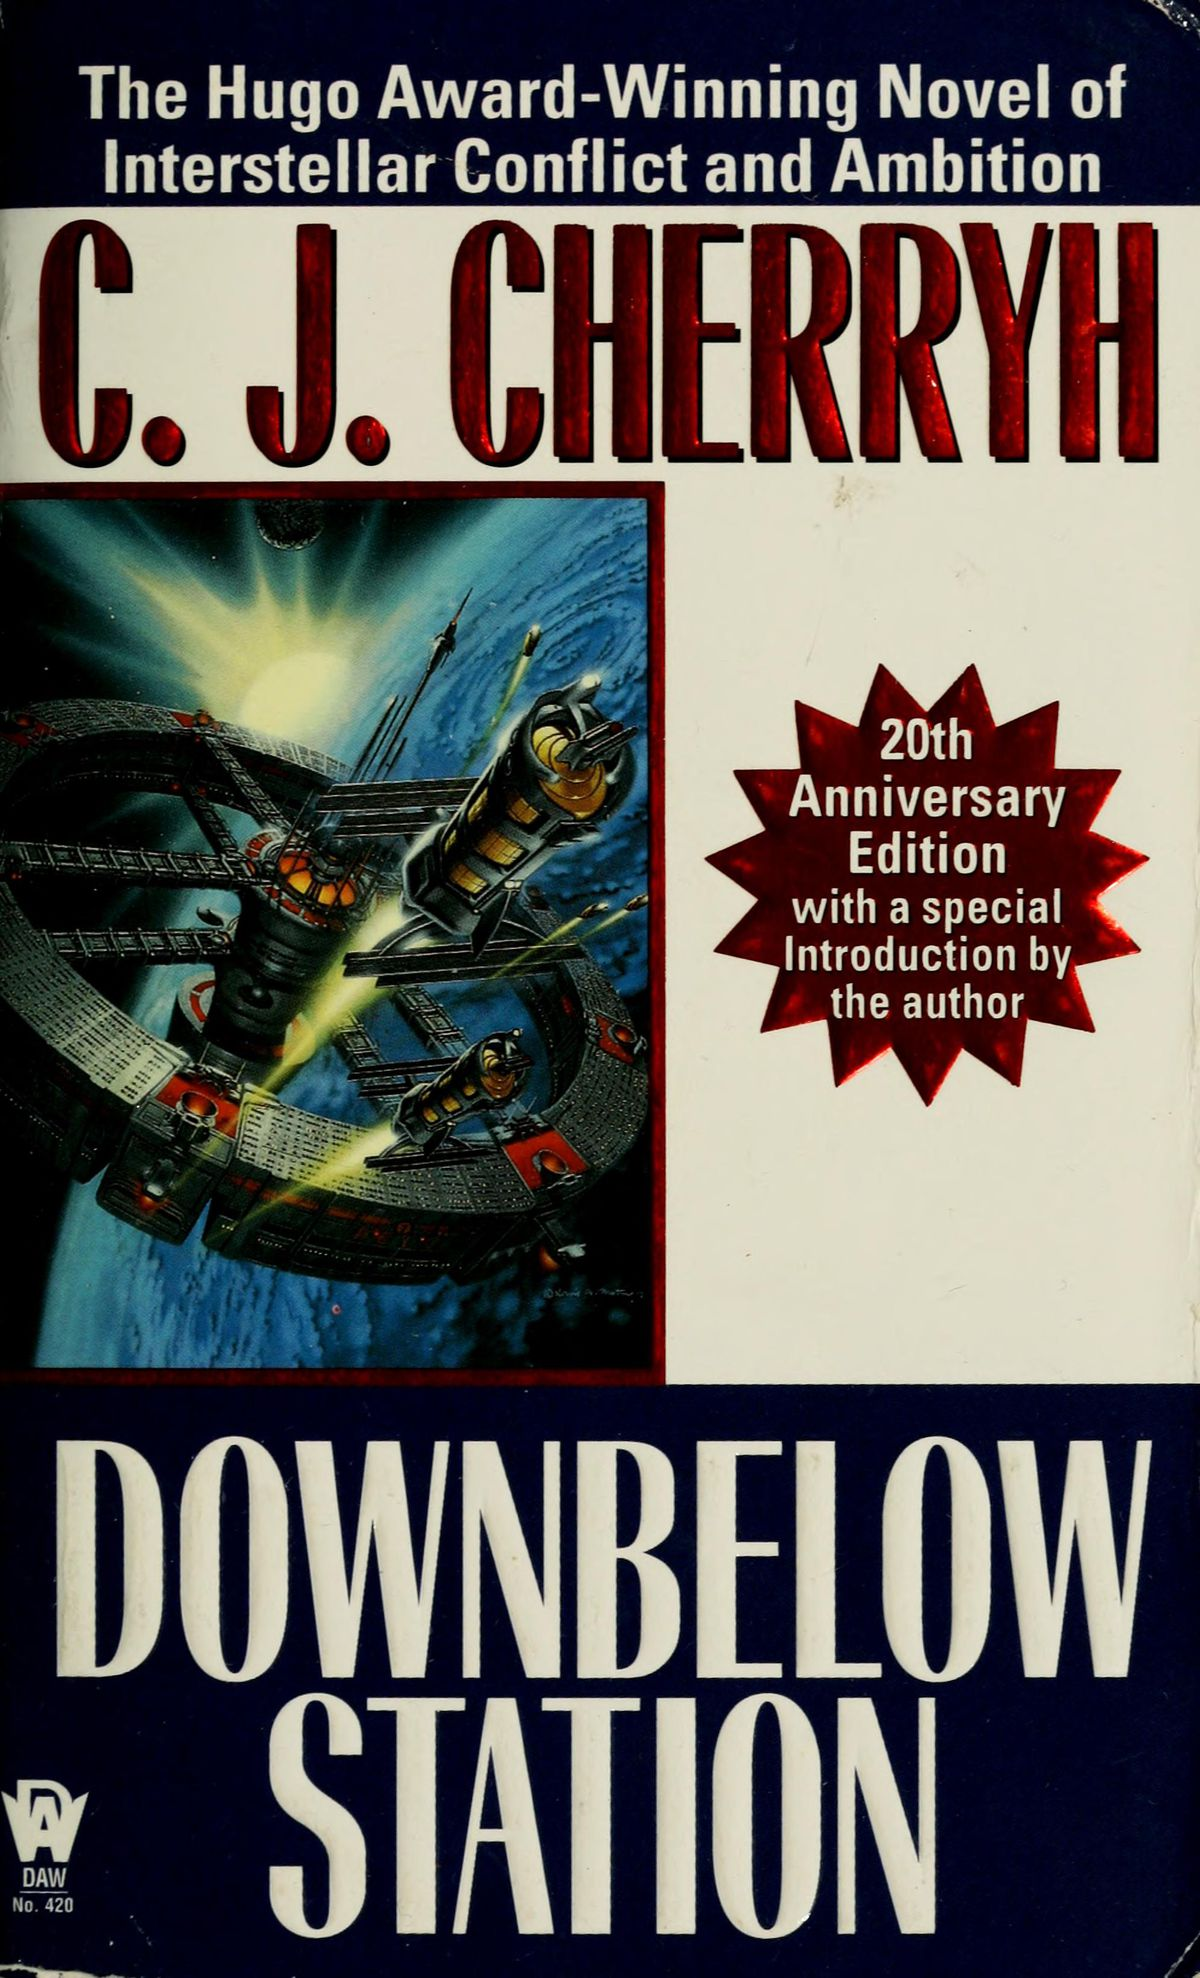 Downbelow Station by C.J. Cherryh book cover